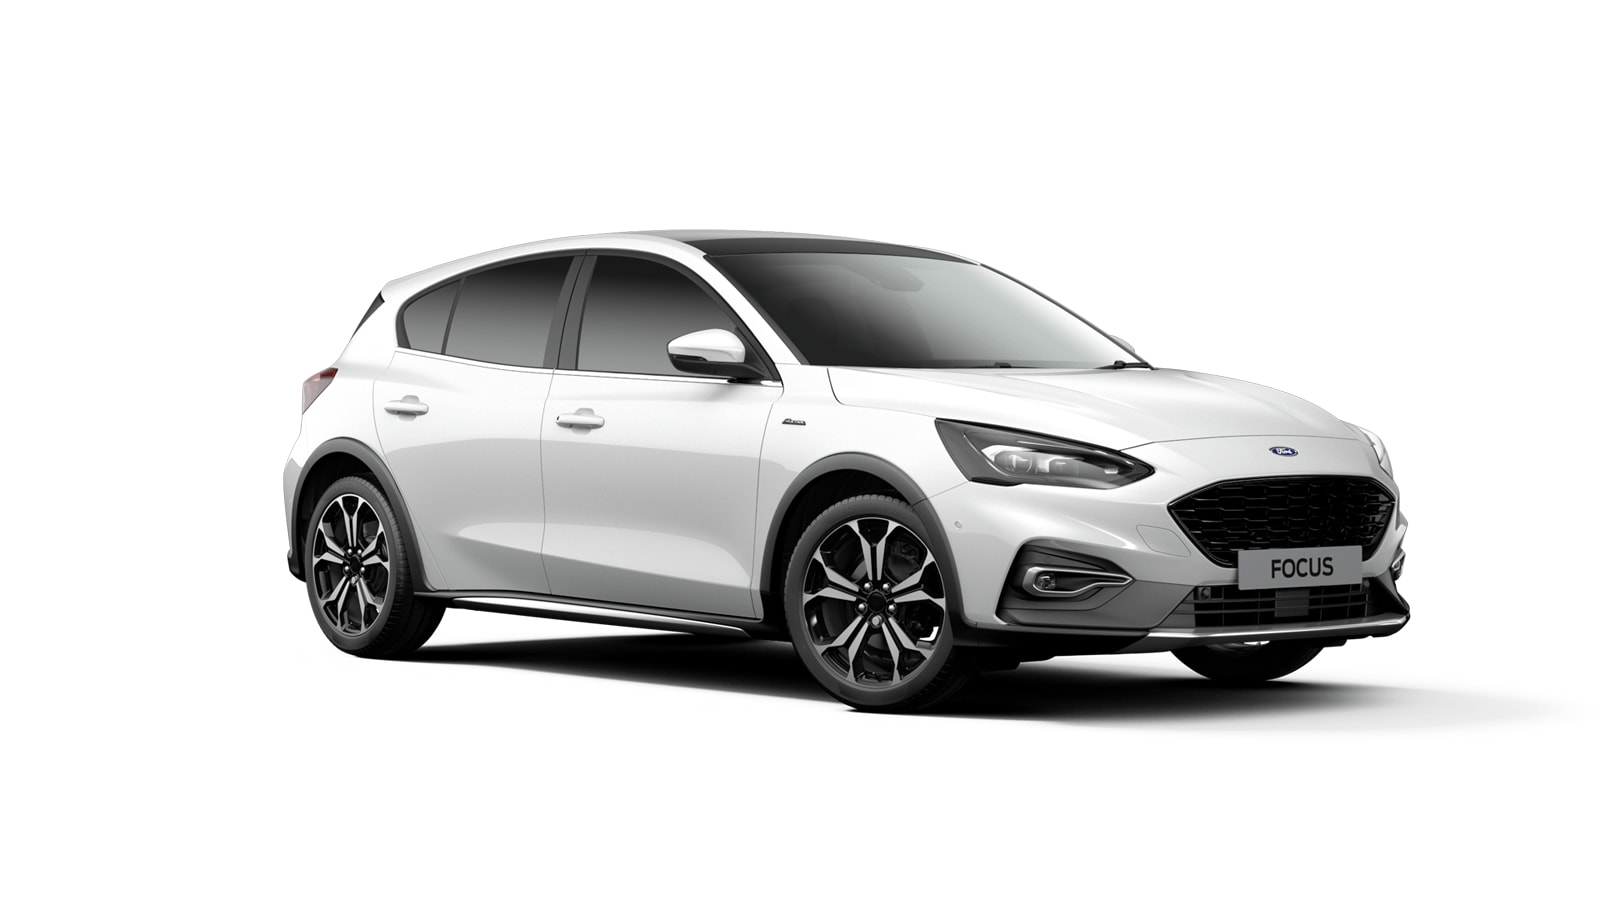 New Ford Focus EcoBoost Mild Hybrid Active X Vignale Edition mHEV